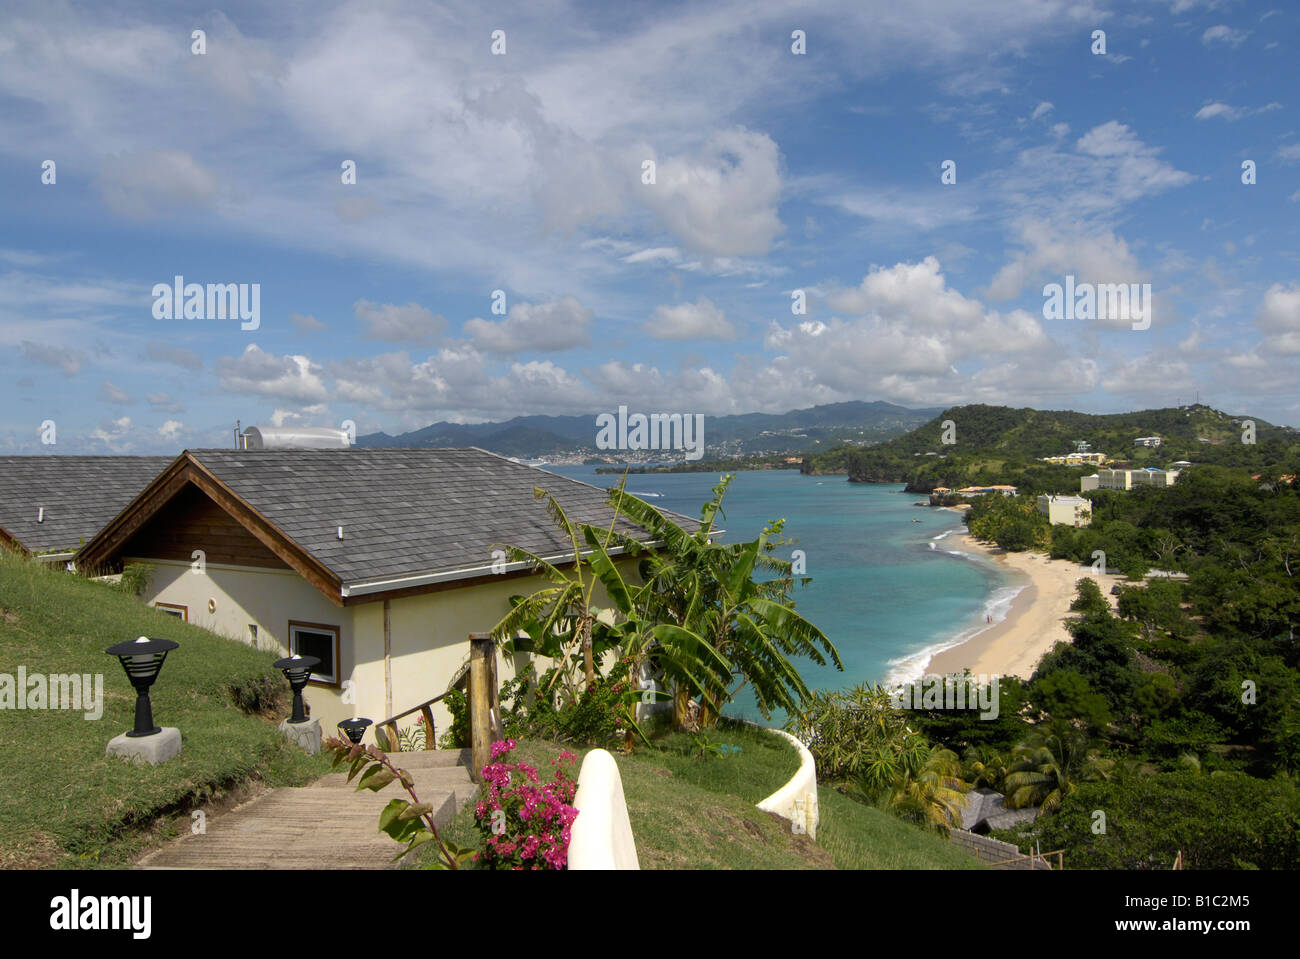 geography / travel, Grenada, landscapes, view from Maca Bana Hotel towards the island, Additional-Rights-Clearance - Stock Image